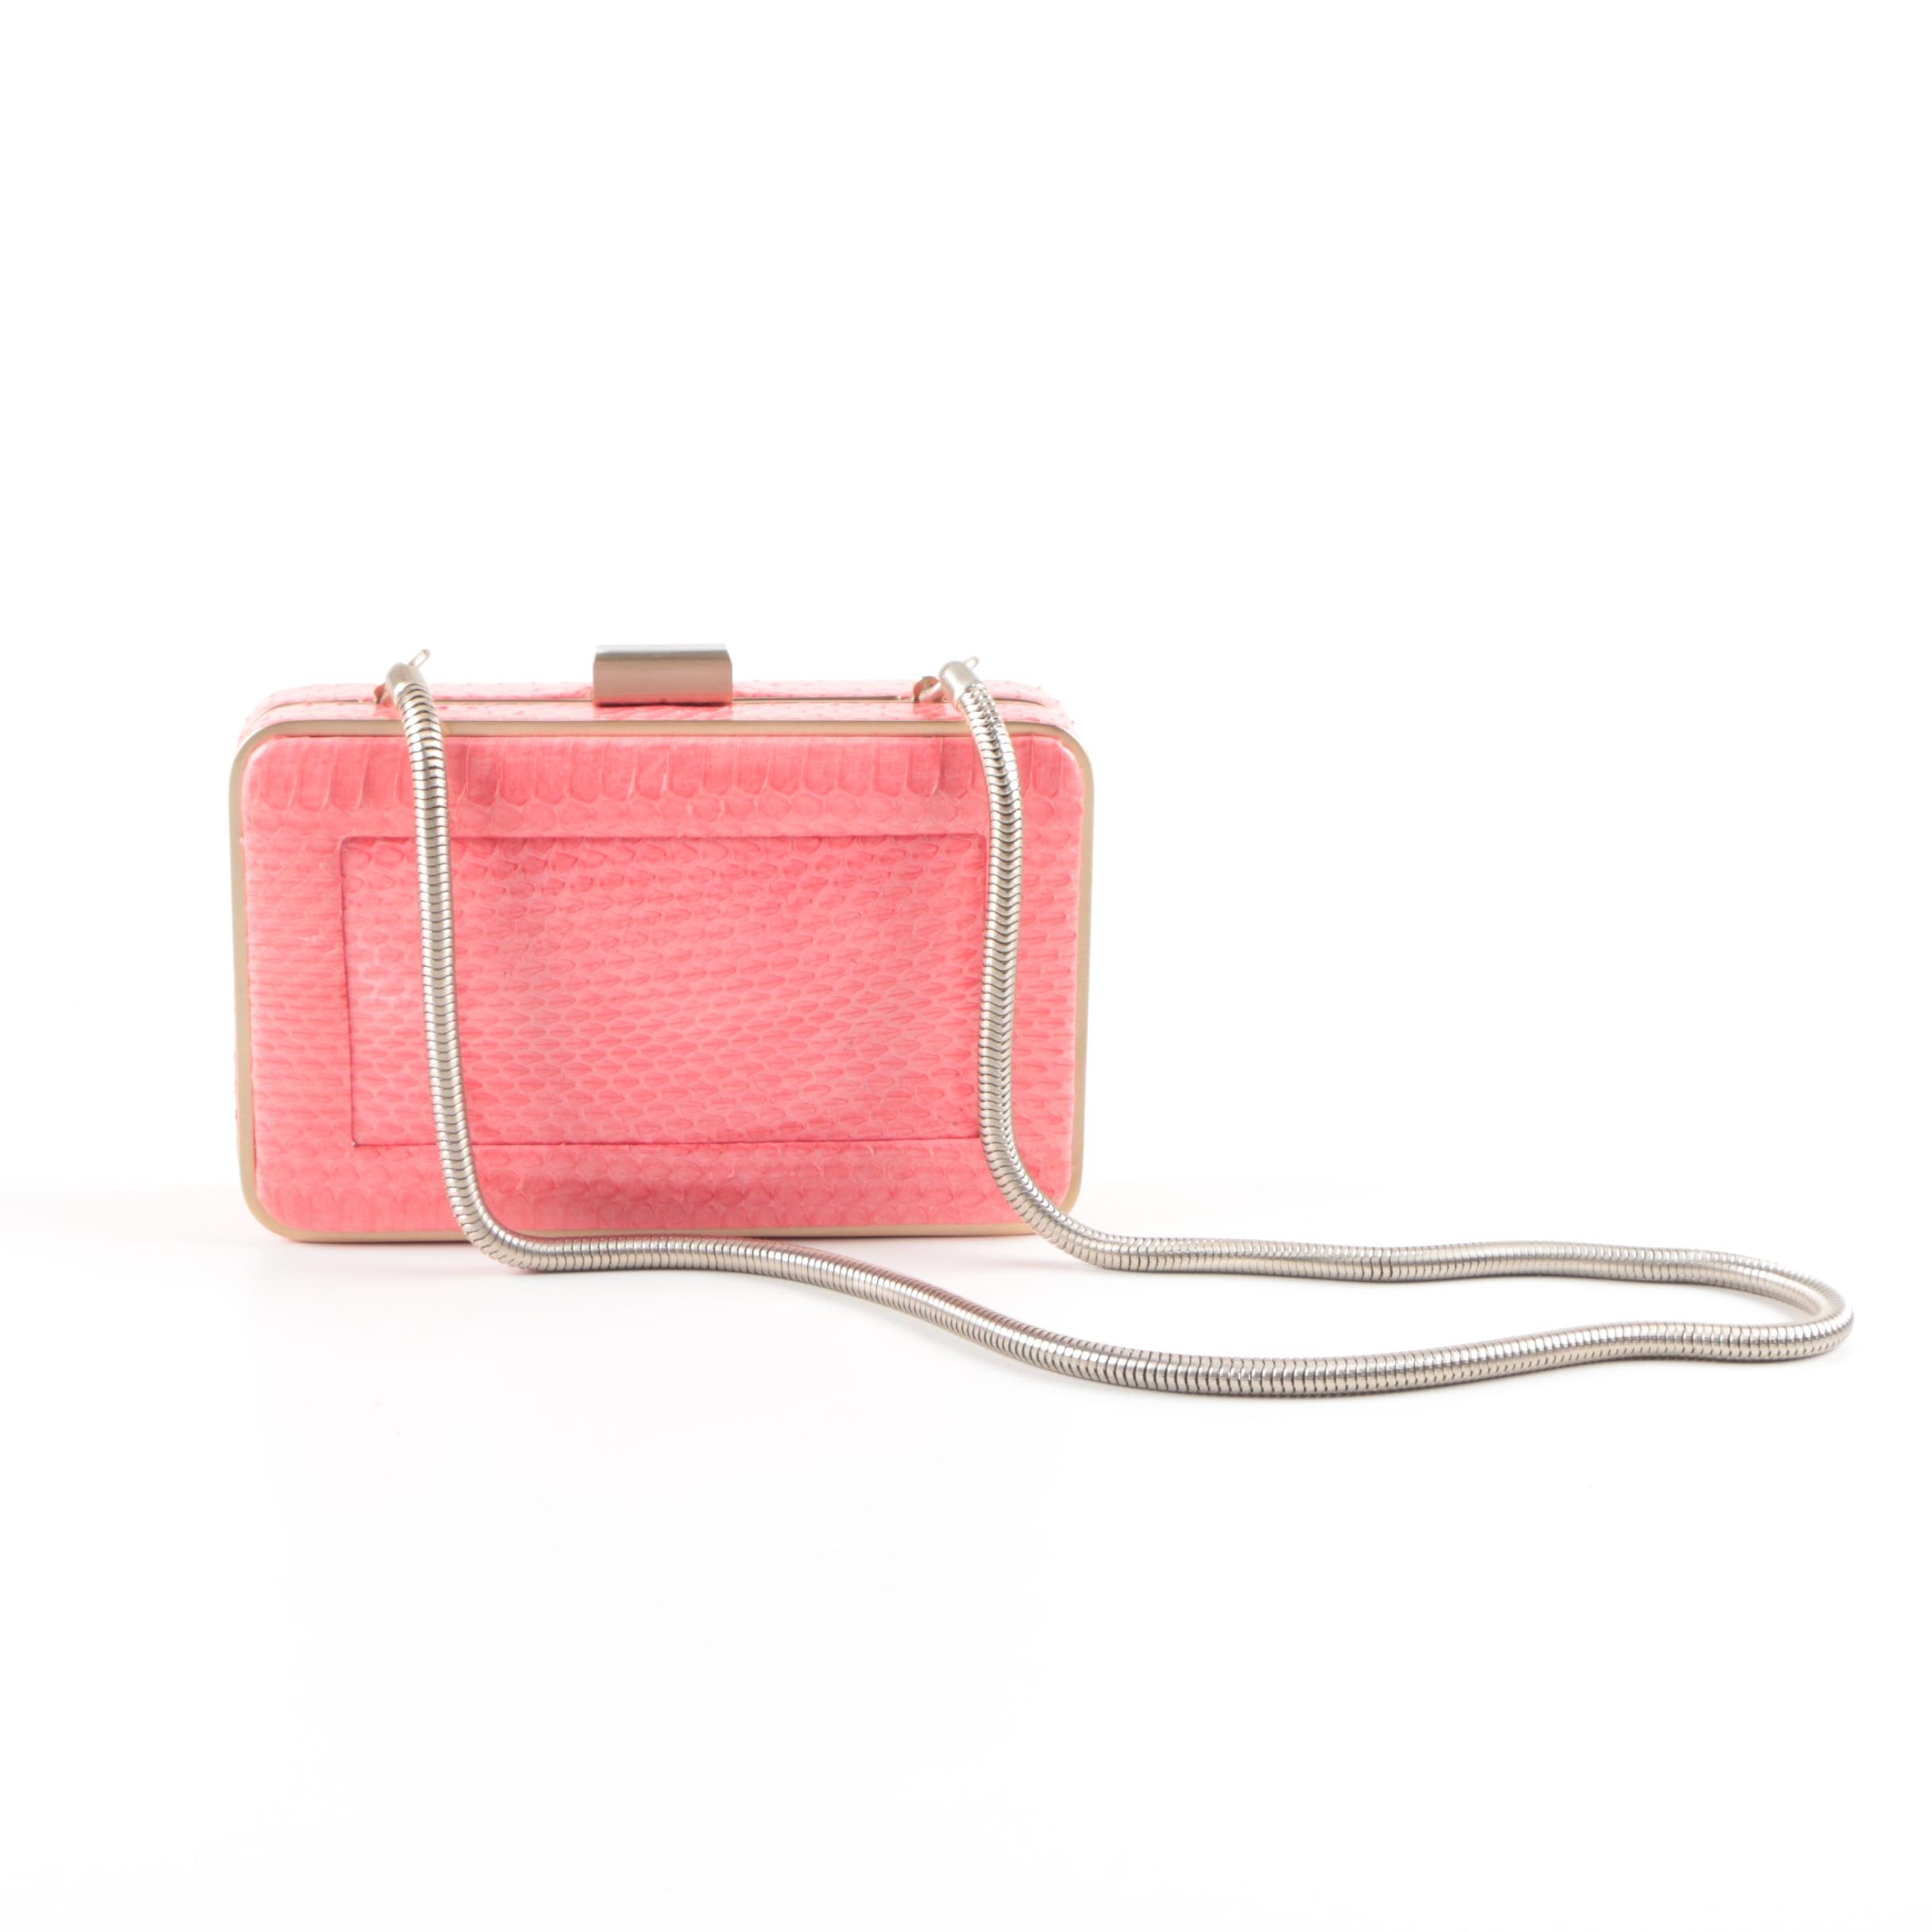 Reiss Dyed Pink Snakeskin Clutch